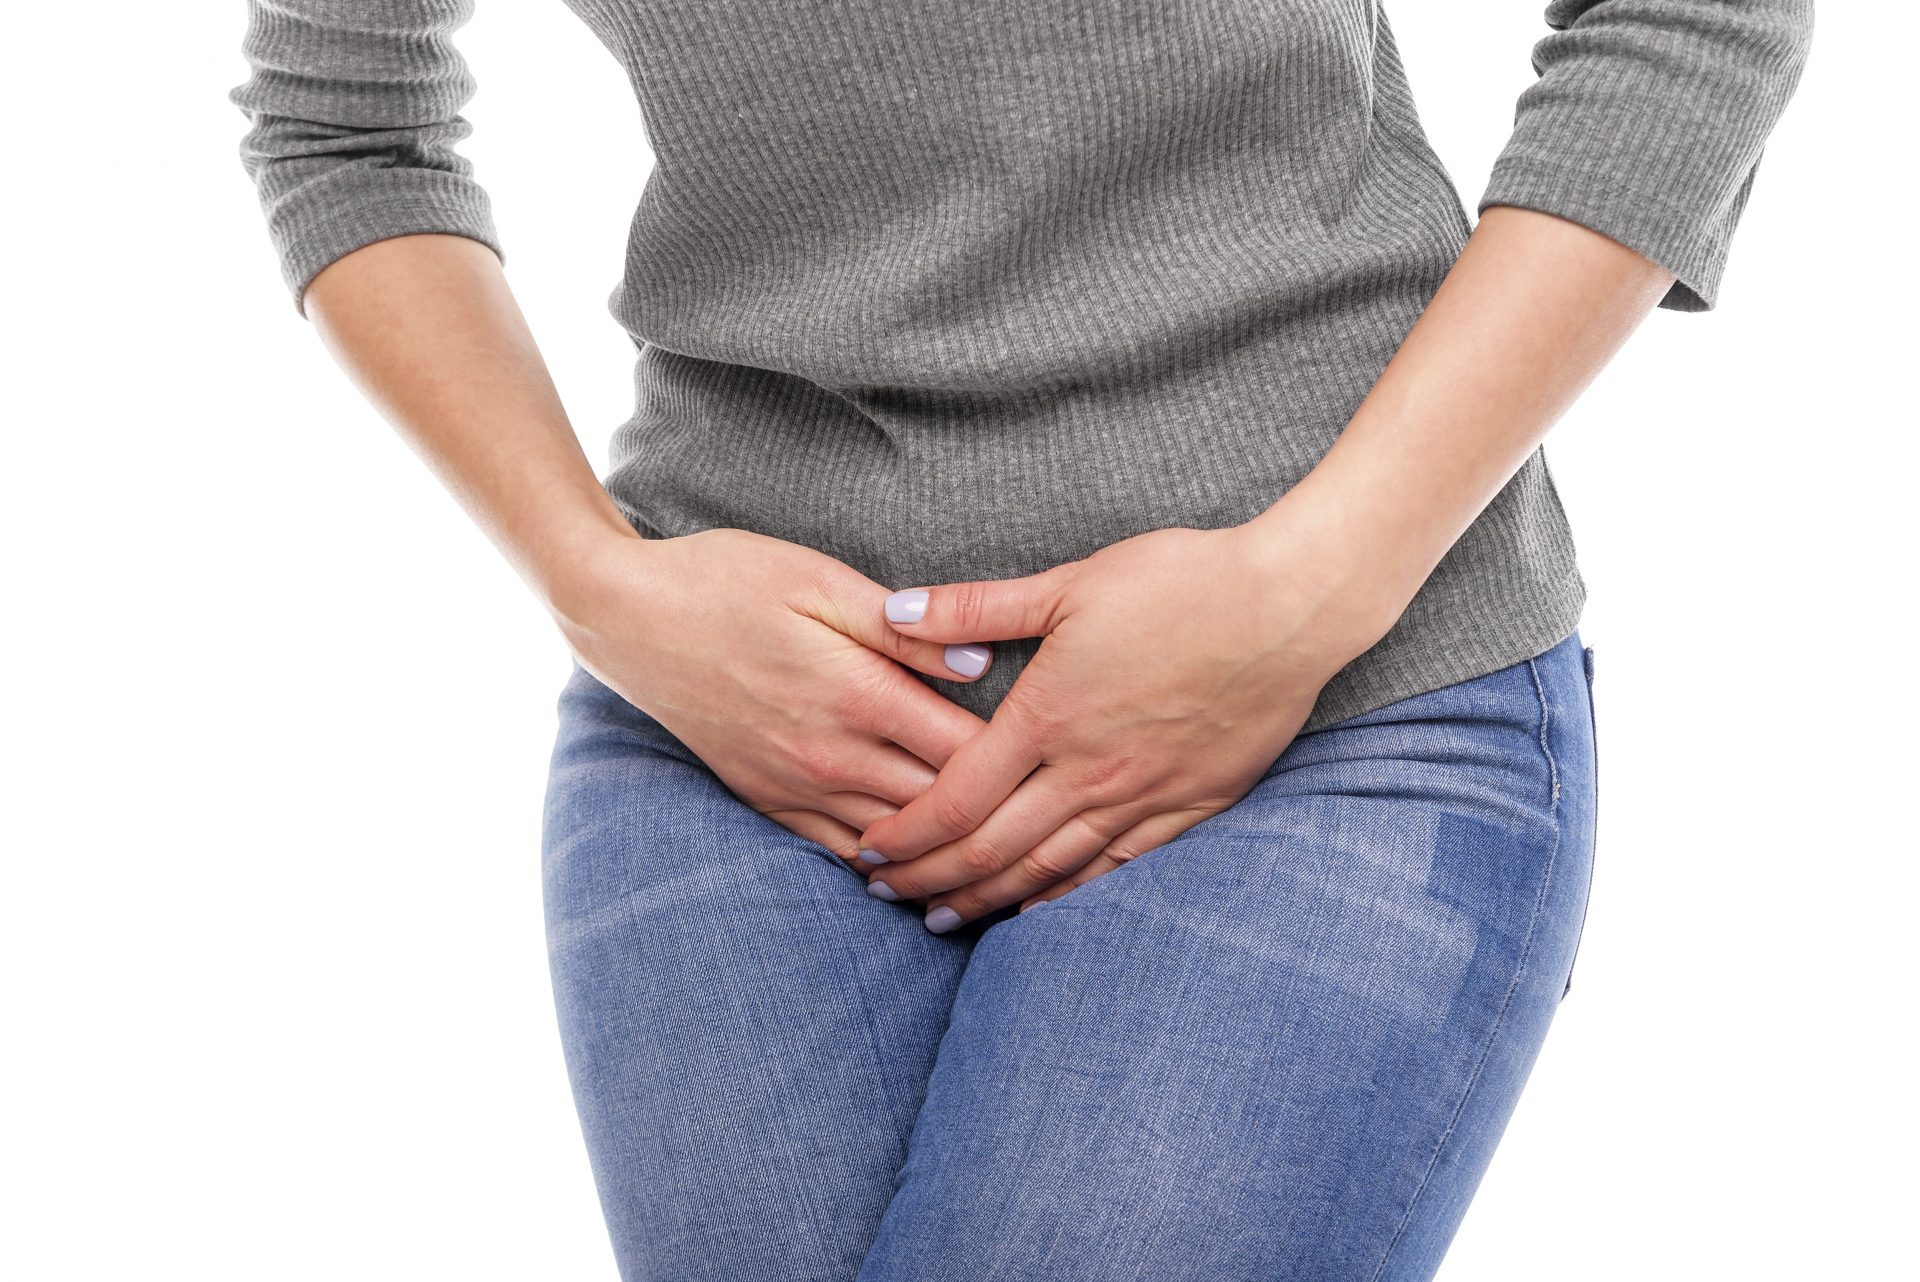 Female suffering from urinary incontinence